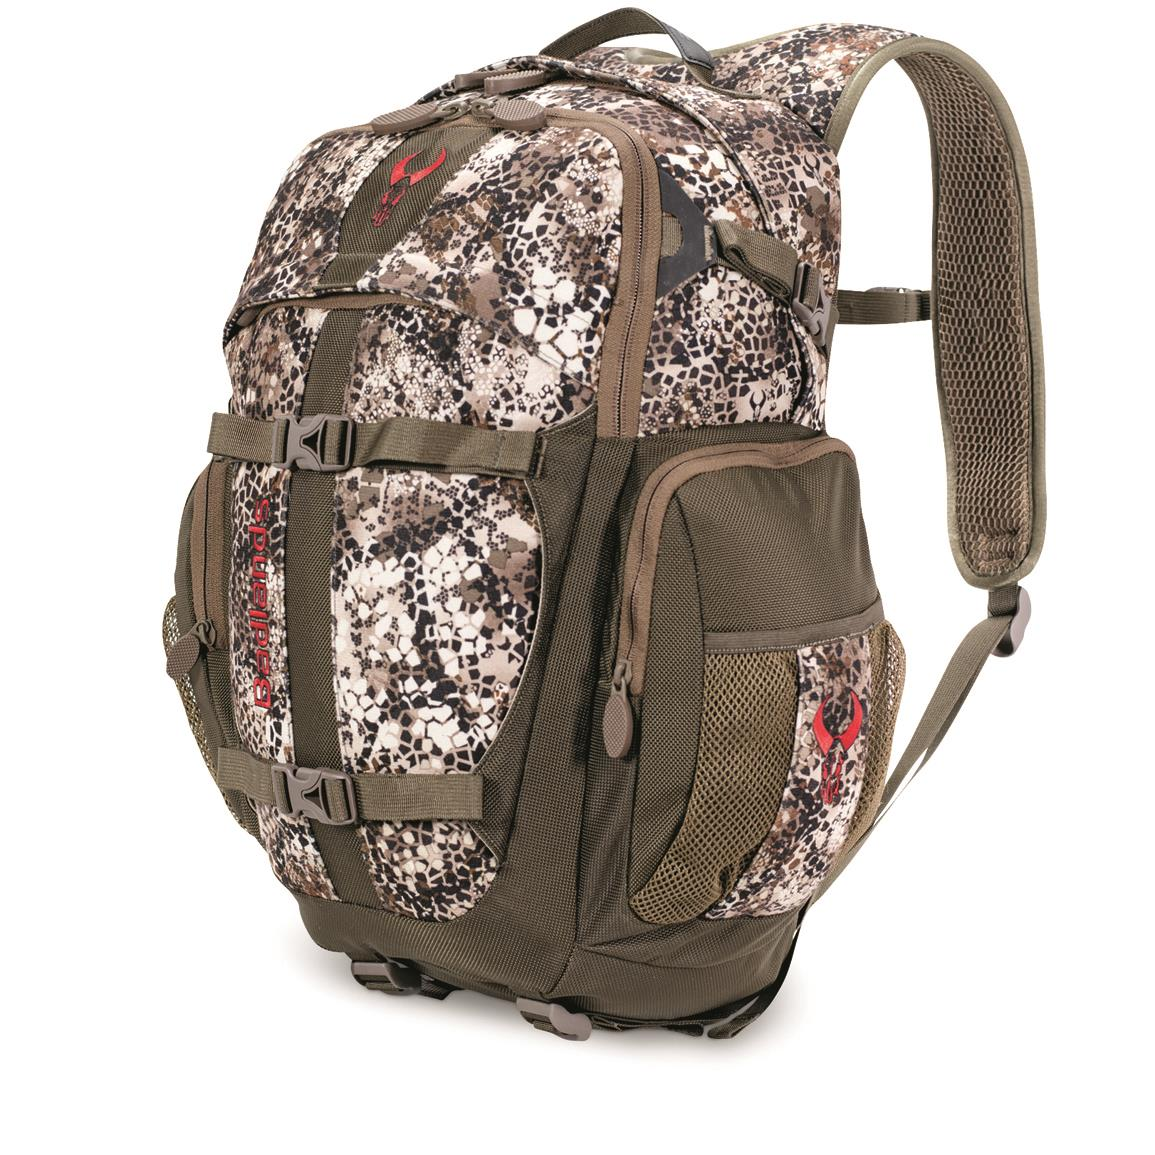 Badlands Pursuit Hunting Pack, Approach Fx